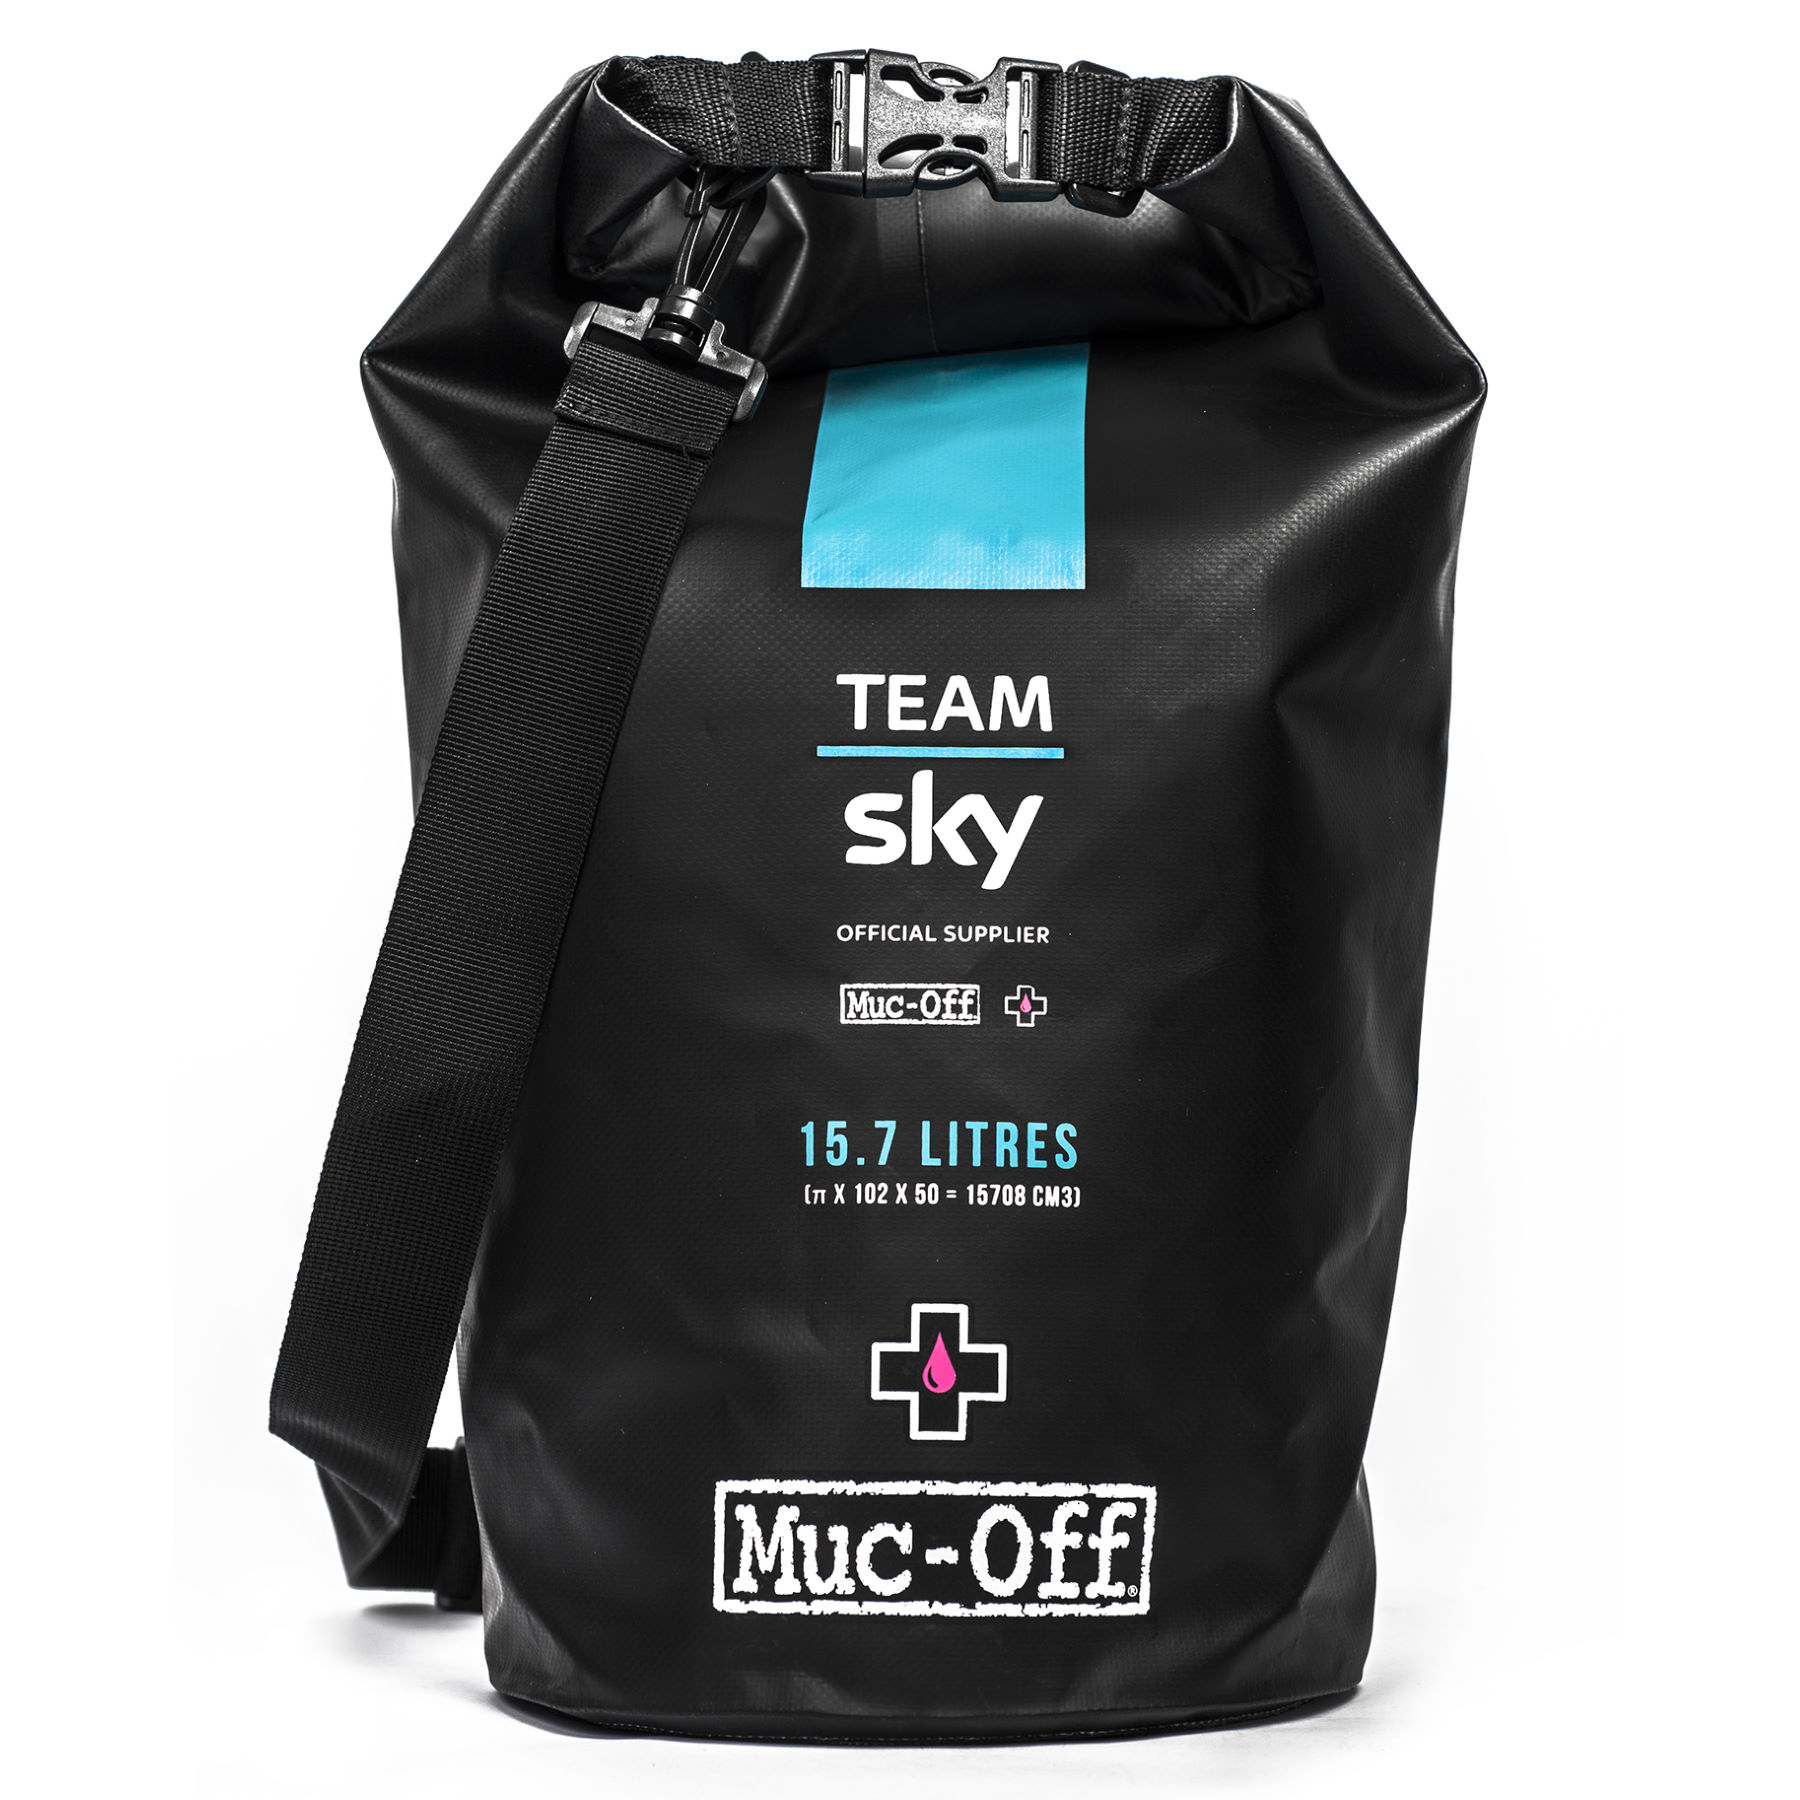 Muc Off Team Sky Dry Cleaning Kit Bag